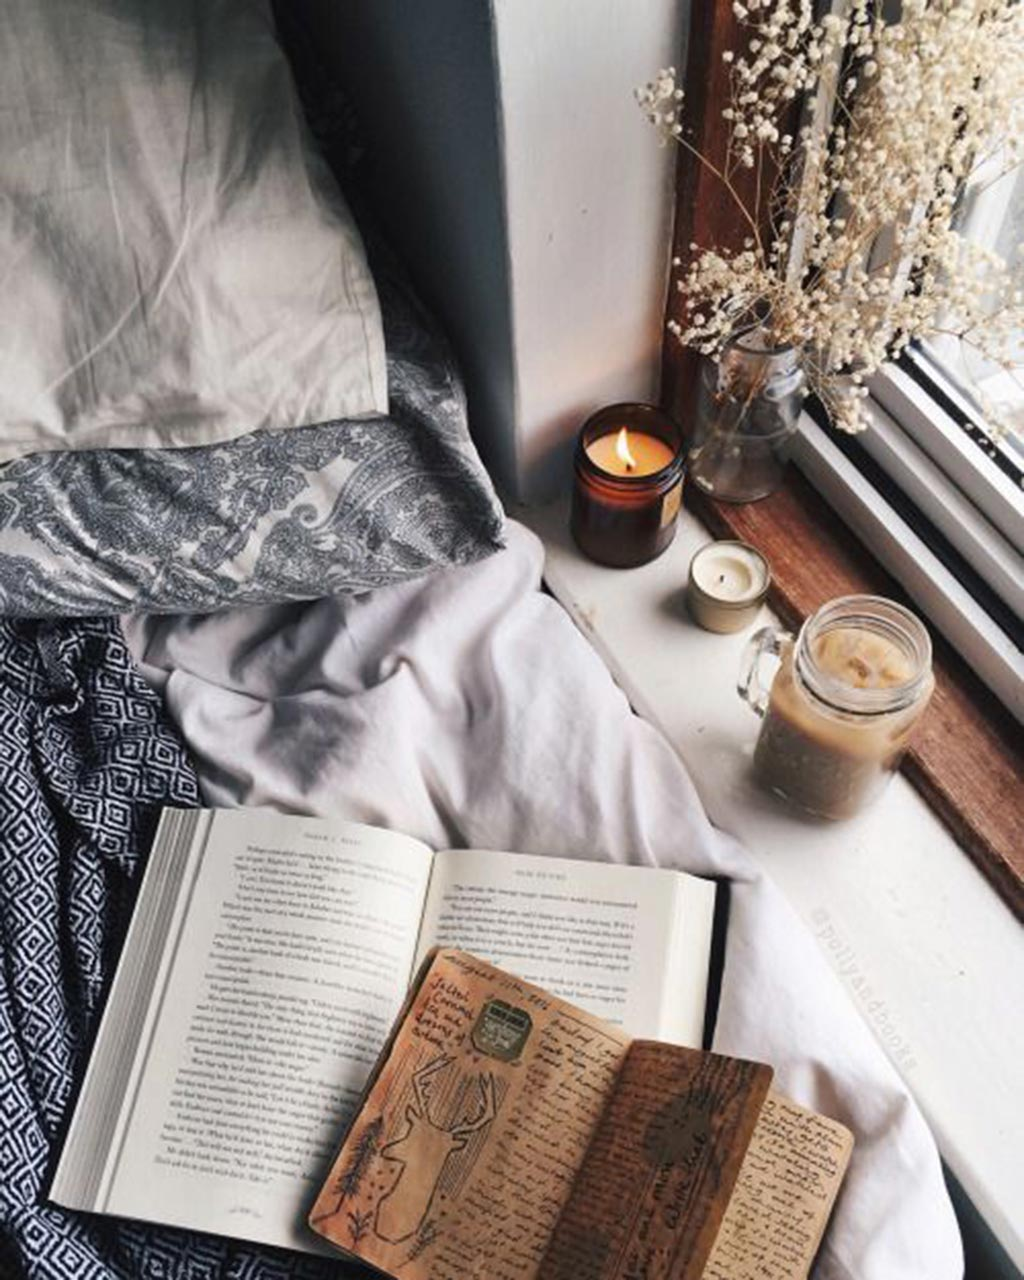 5 Home Decor Tricks to Make this Fall Even More 'Hygge' by Doris